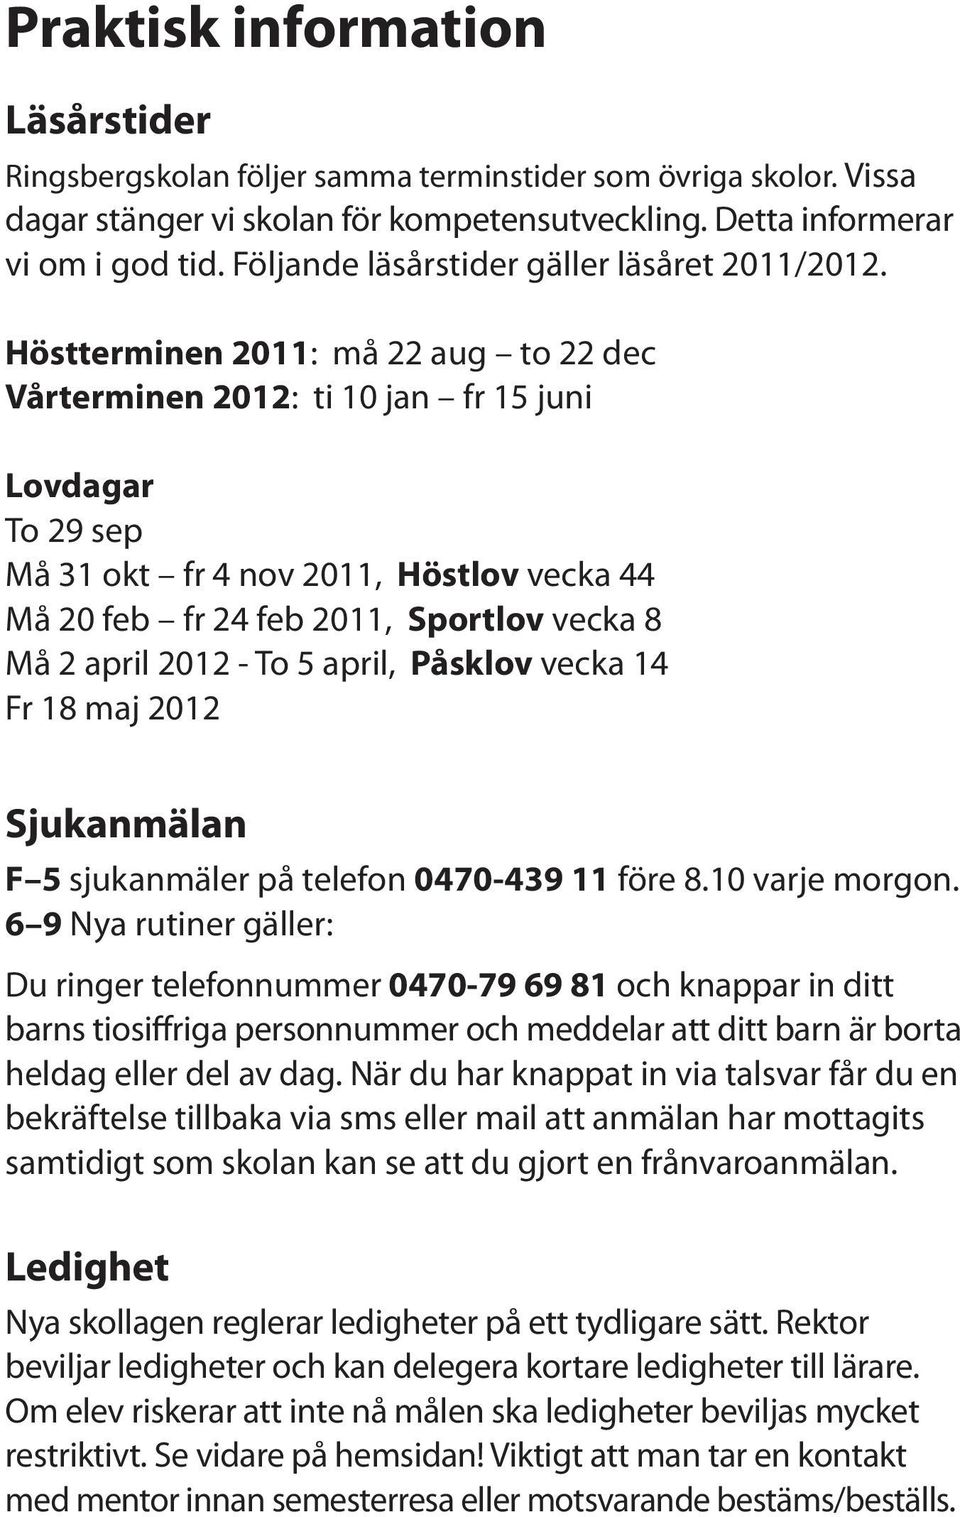 Höstterminen 2011: må 22 aug to 22 dec Vårterminen 2012: ti 10 jan fr 15 juni Lovdagar To 29 sep Må 31 okt fr 4 nov 2011, Höstlov vecka 44 Må 20 feb fr 24 feb 2011, Sportlov vecka 8 Må 2 april 2012 -